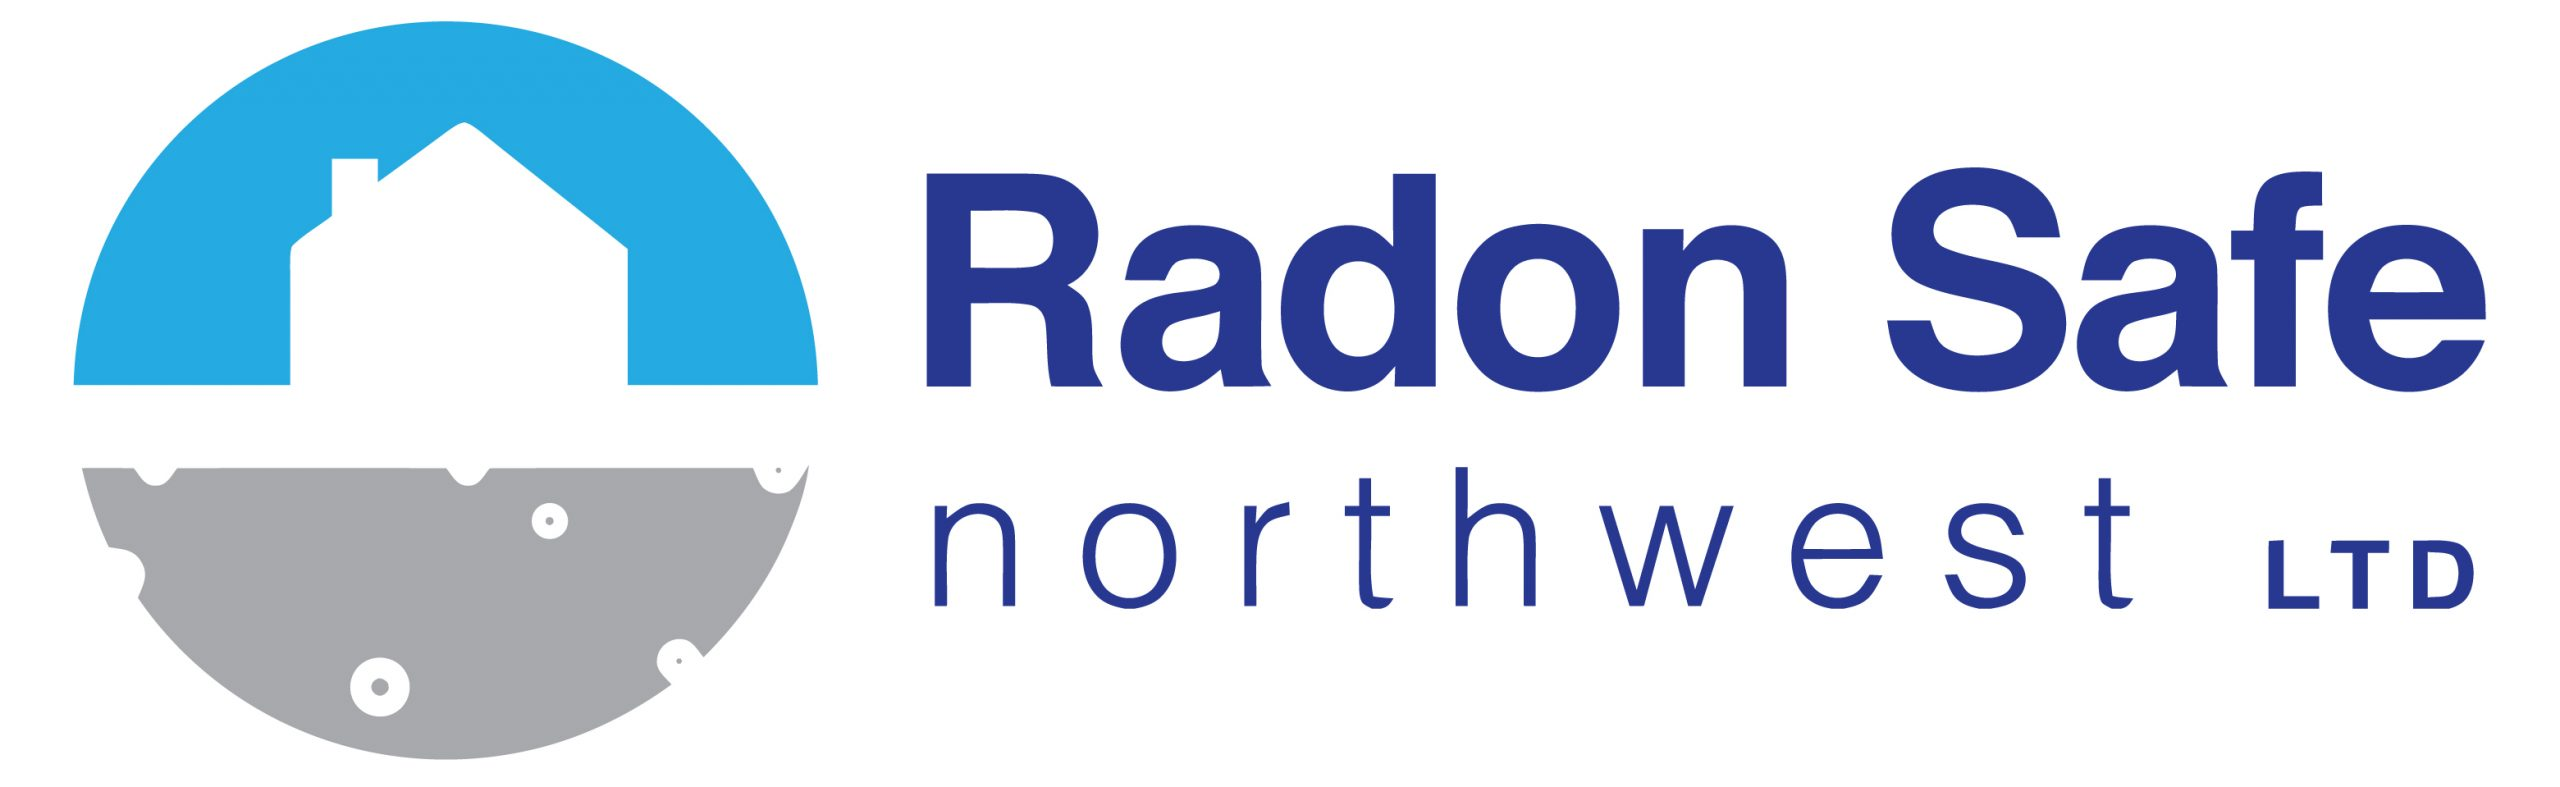 Radon Safe Northwest LTD